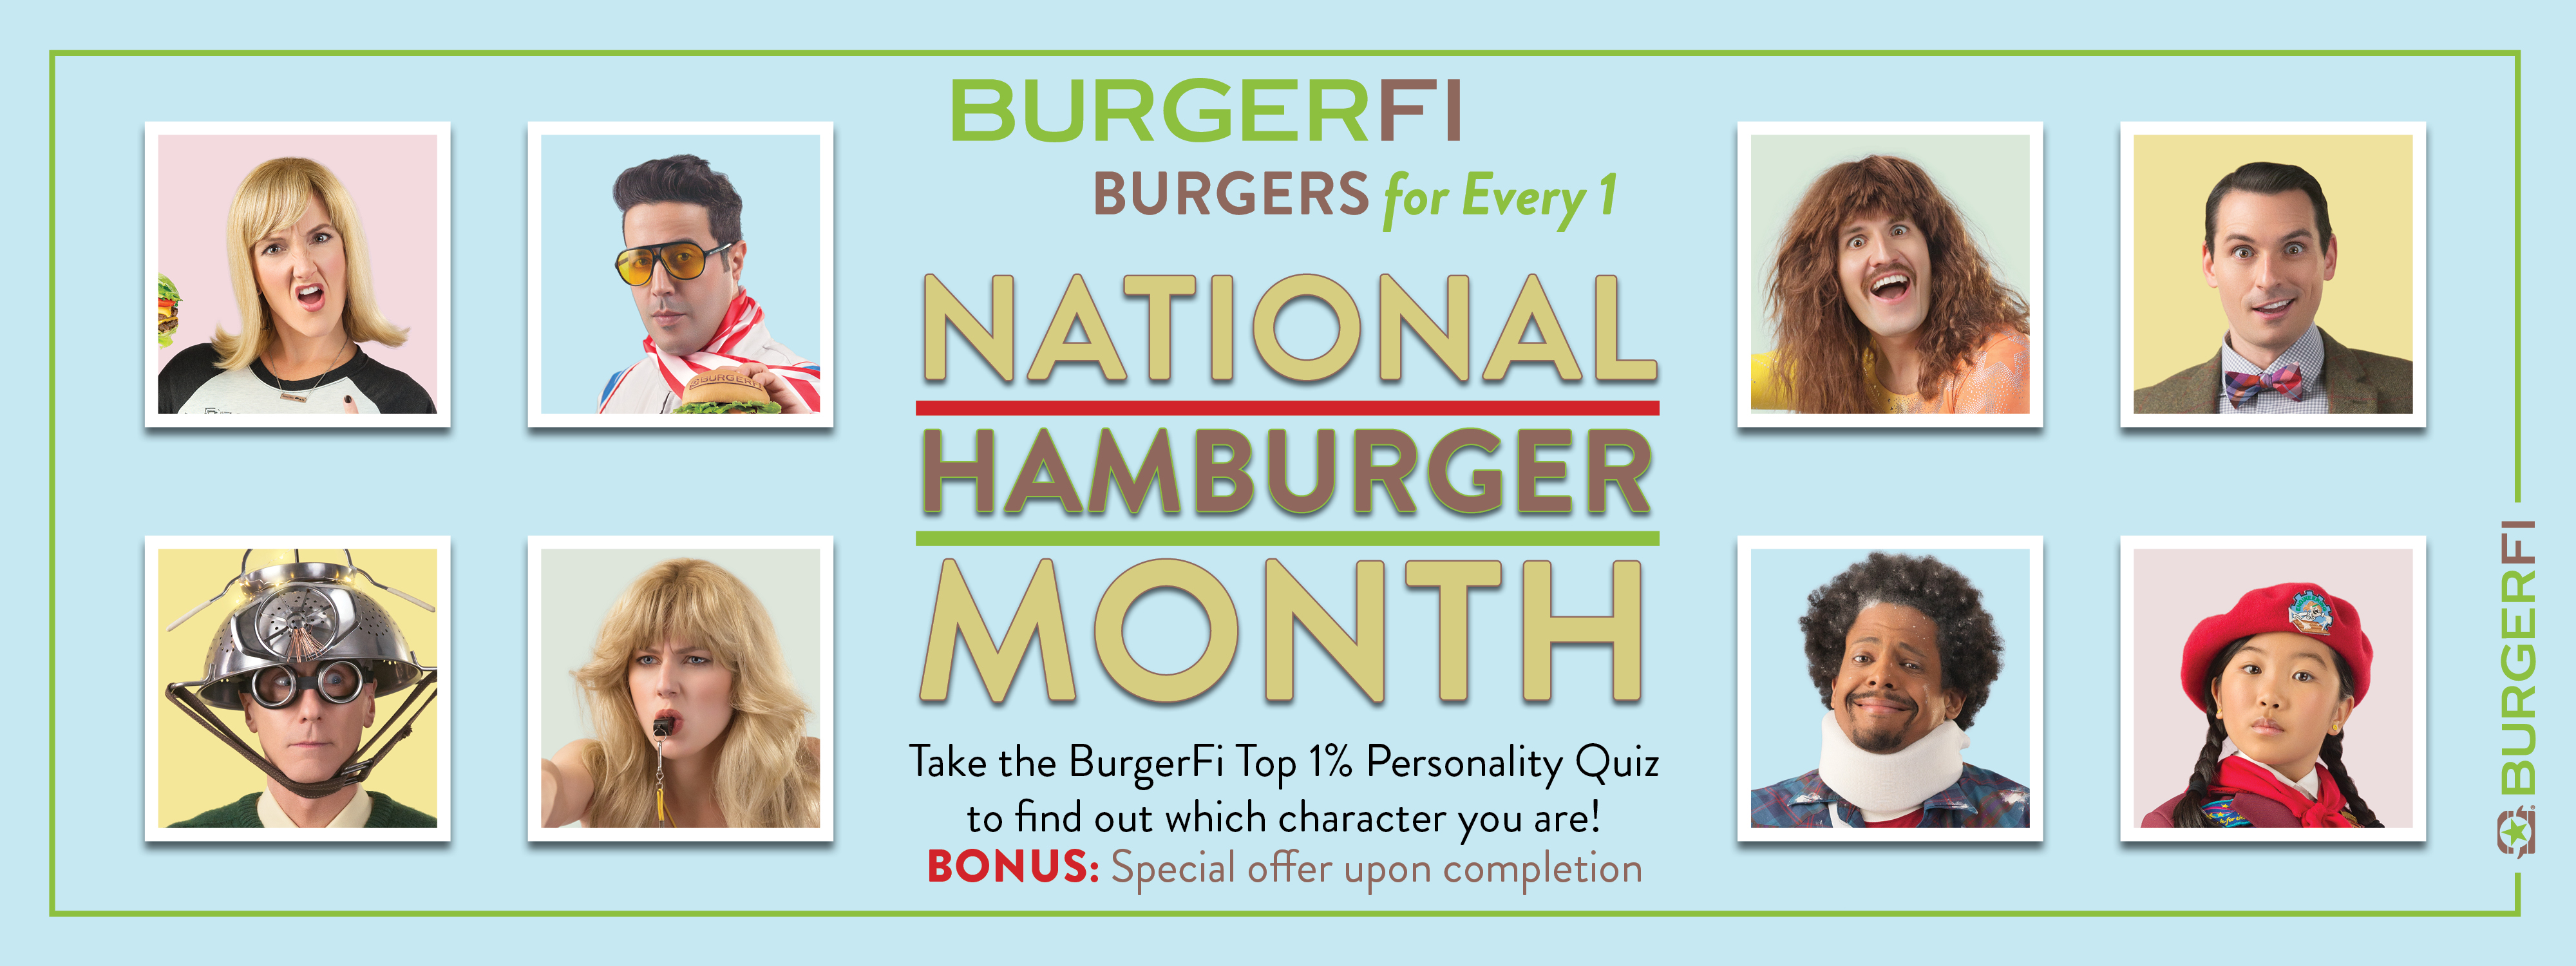 http://BurgerFi%20Quiz%20to%20find%20out%20which%20character%20you%20are.%20